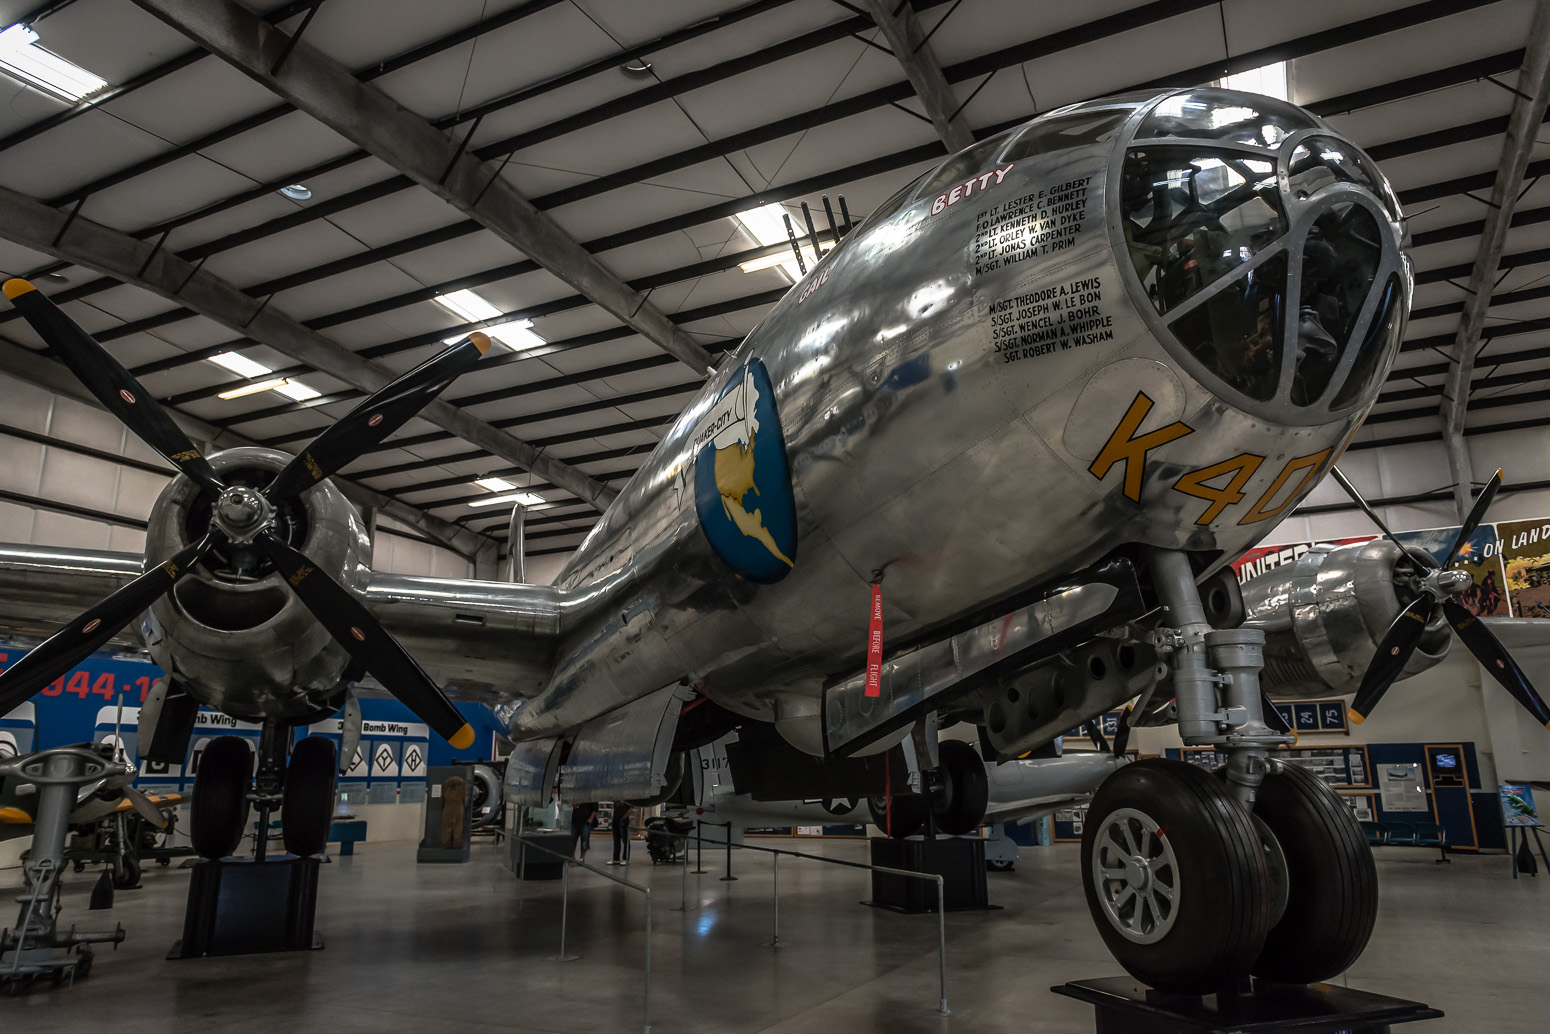 B-29 Stratofortress, Carried out 26 bombing missions over Japan during WWII, Pima Air & Space Museum , Tucson, USA